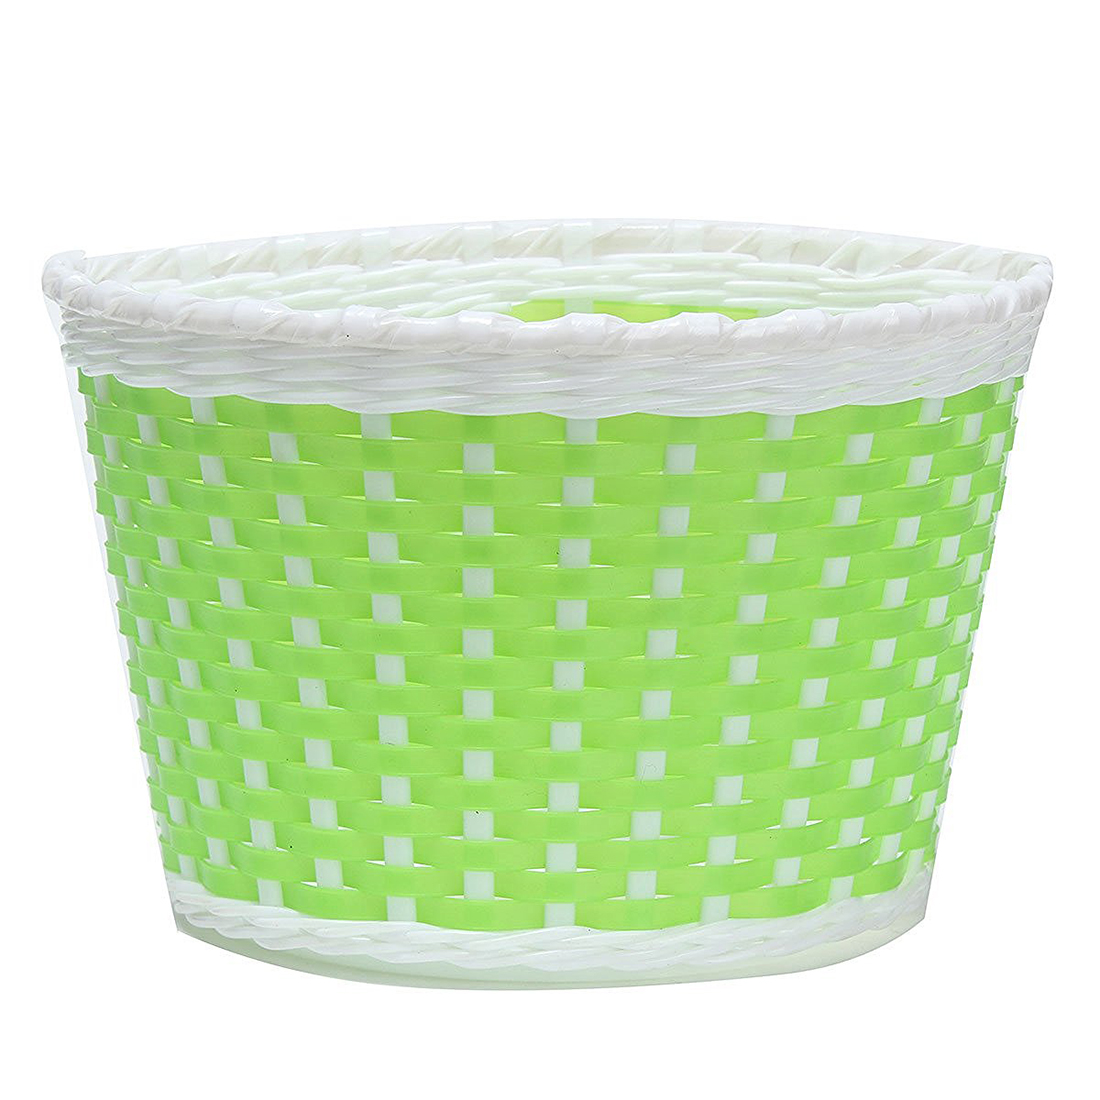 Children Bicycle basket Shopping basket Luggage carrier Handlebar basket Bike handle basket green